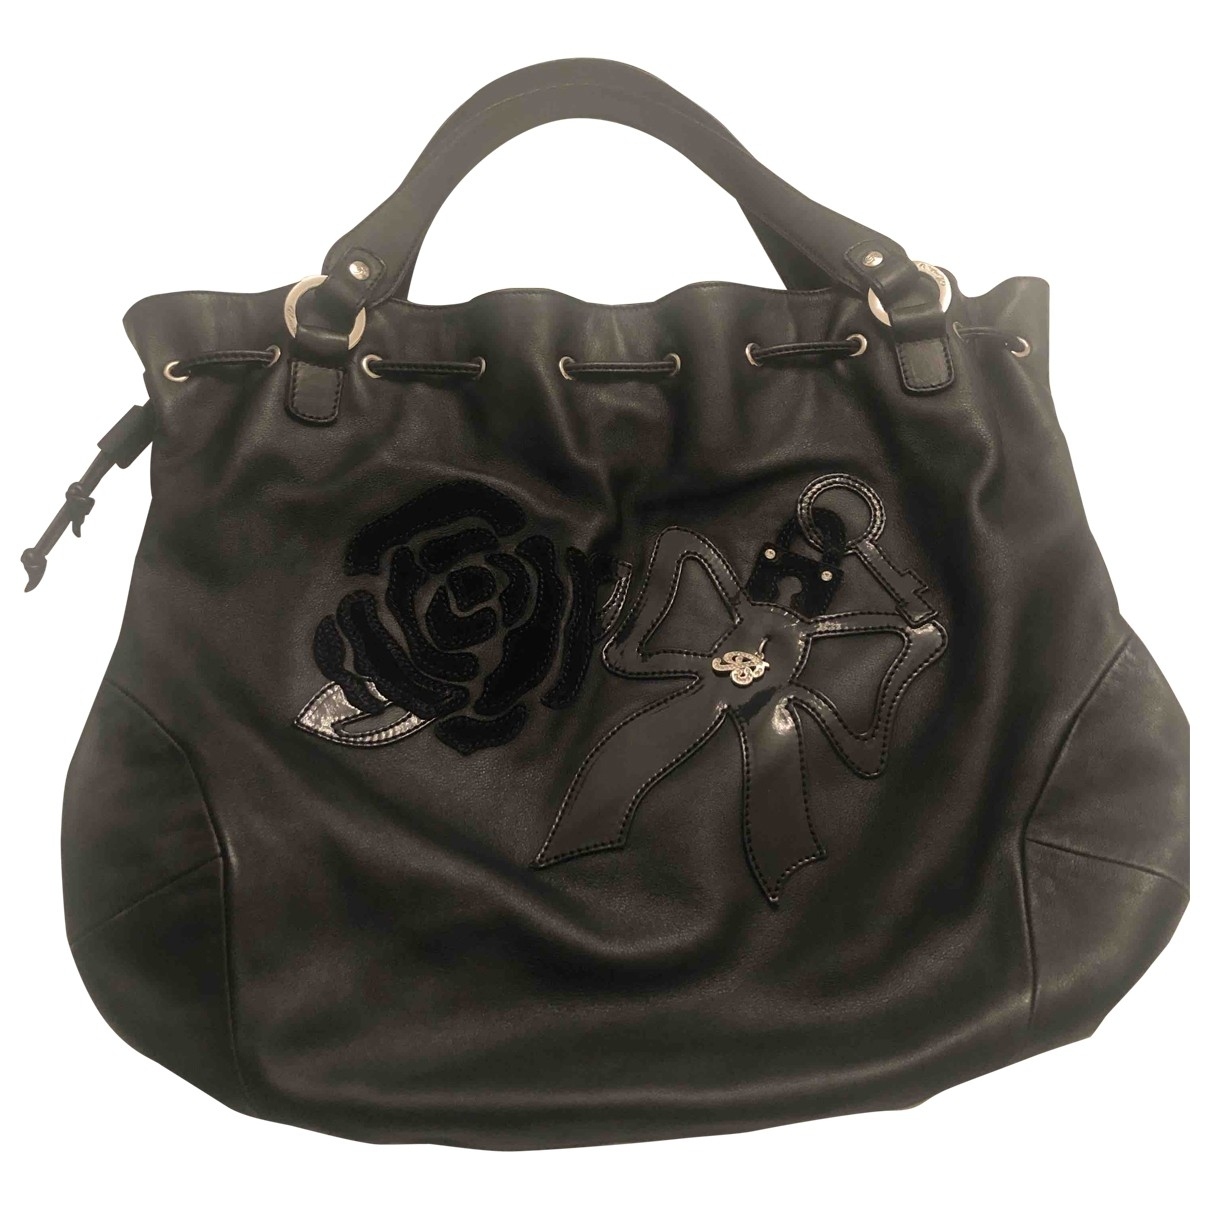 Blumarine \N Black Leather handbag for Women \N